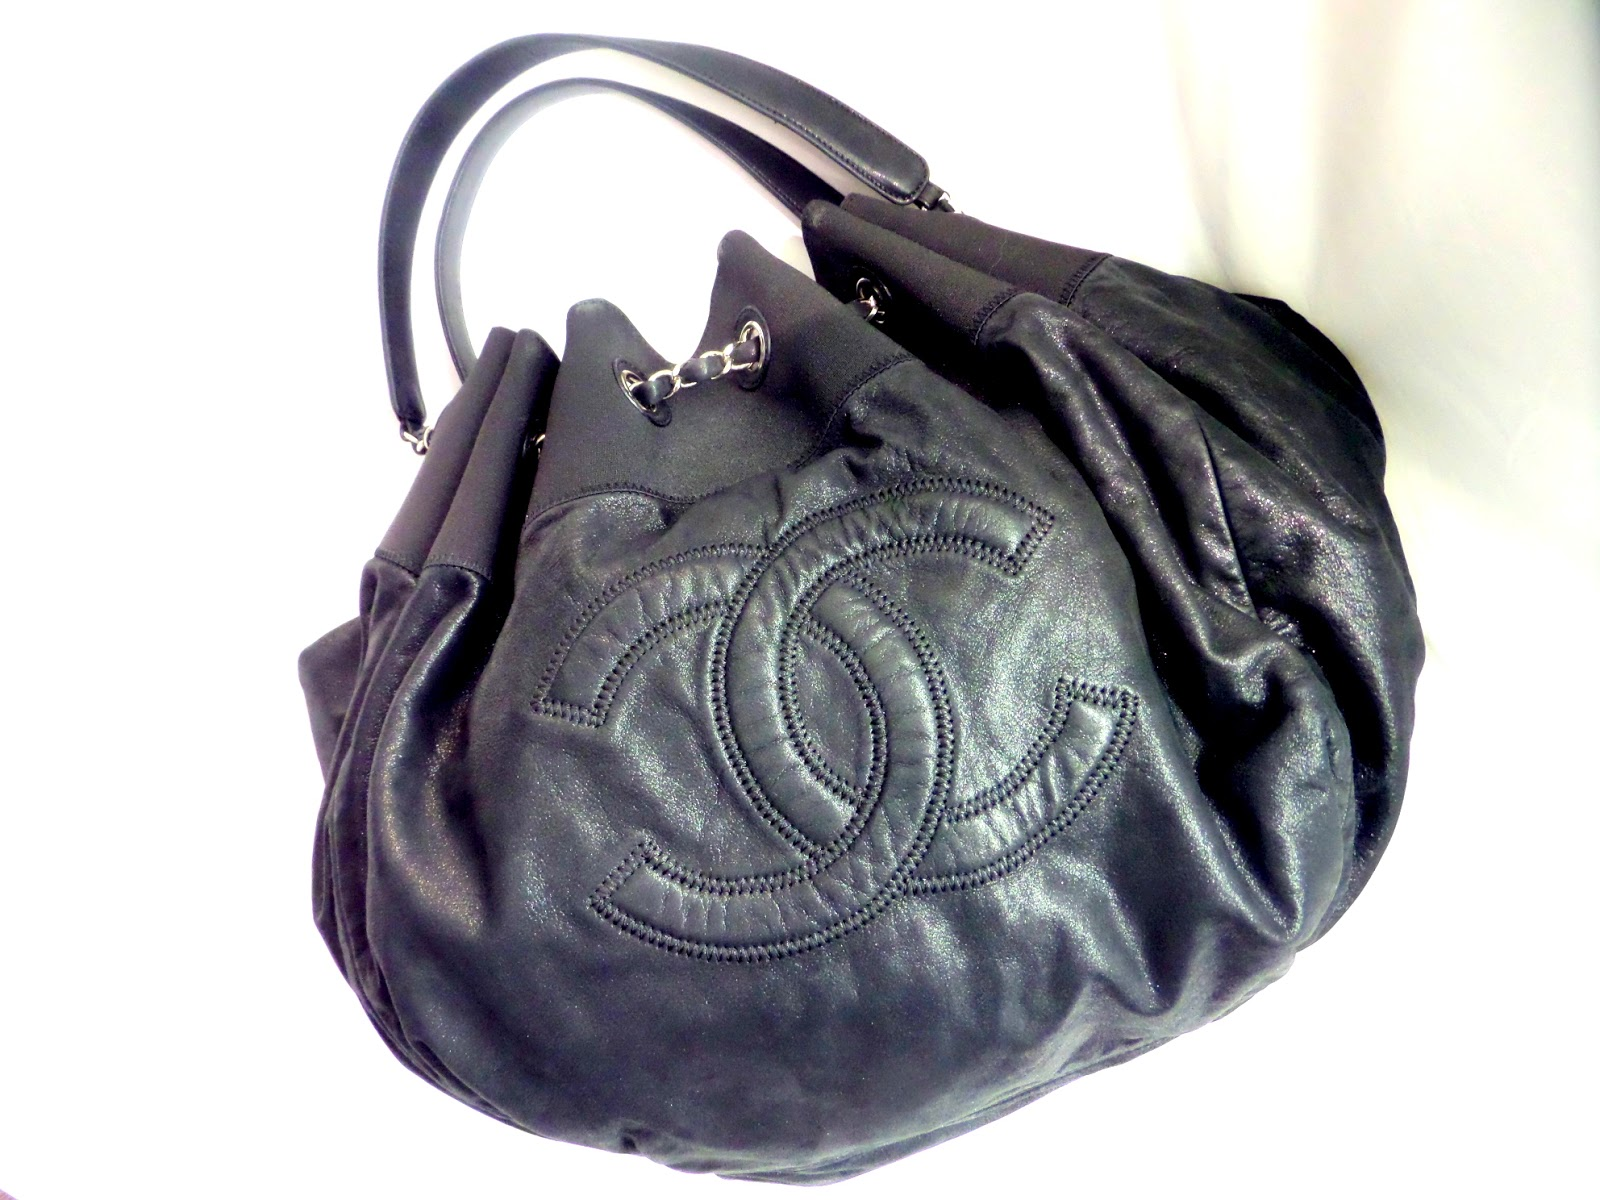 639ebc50fa6 Vancouver Luxury Designer Consignment Shop: Buy Sell Consign Chanel ...